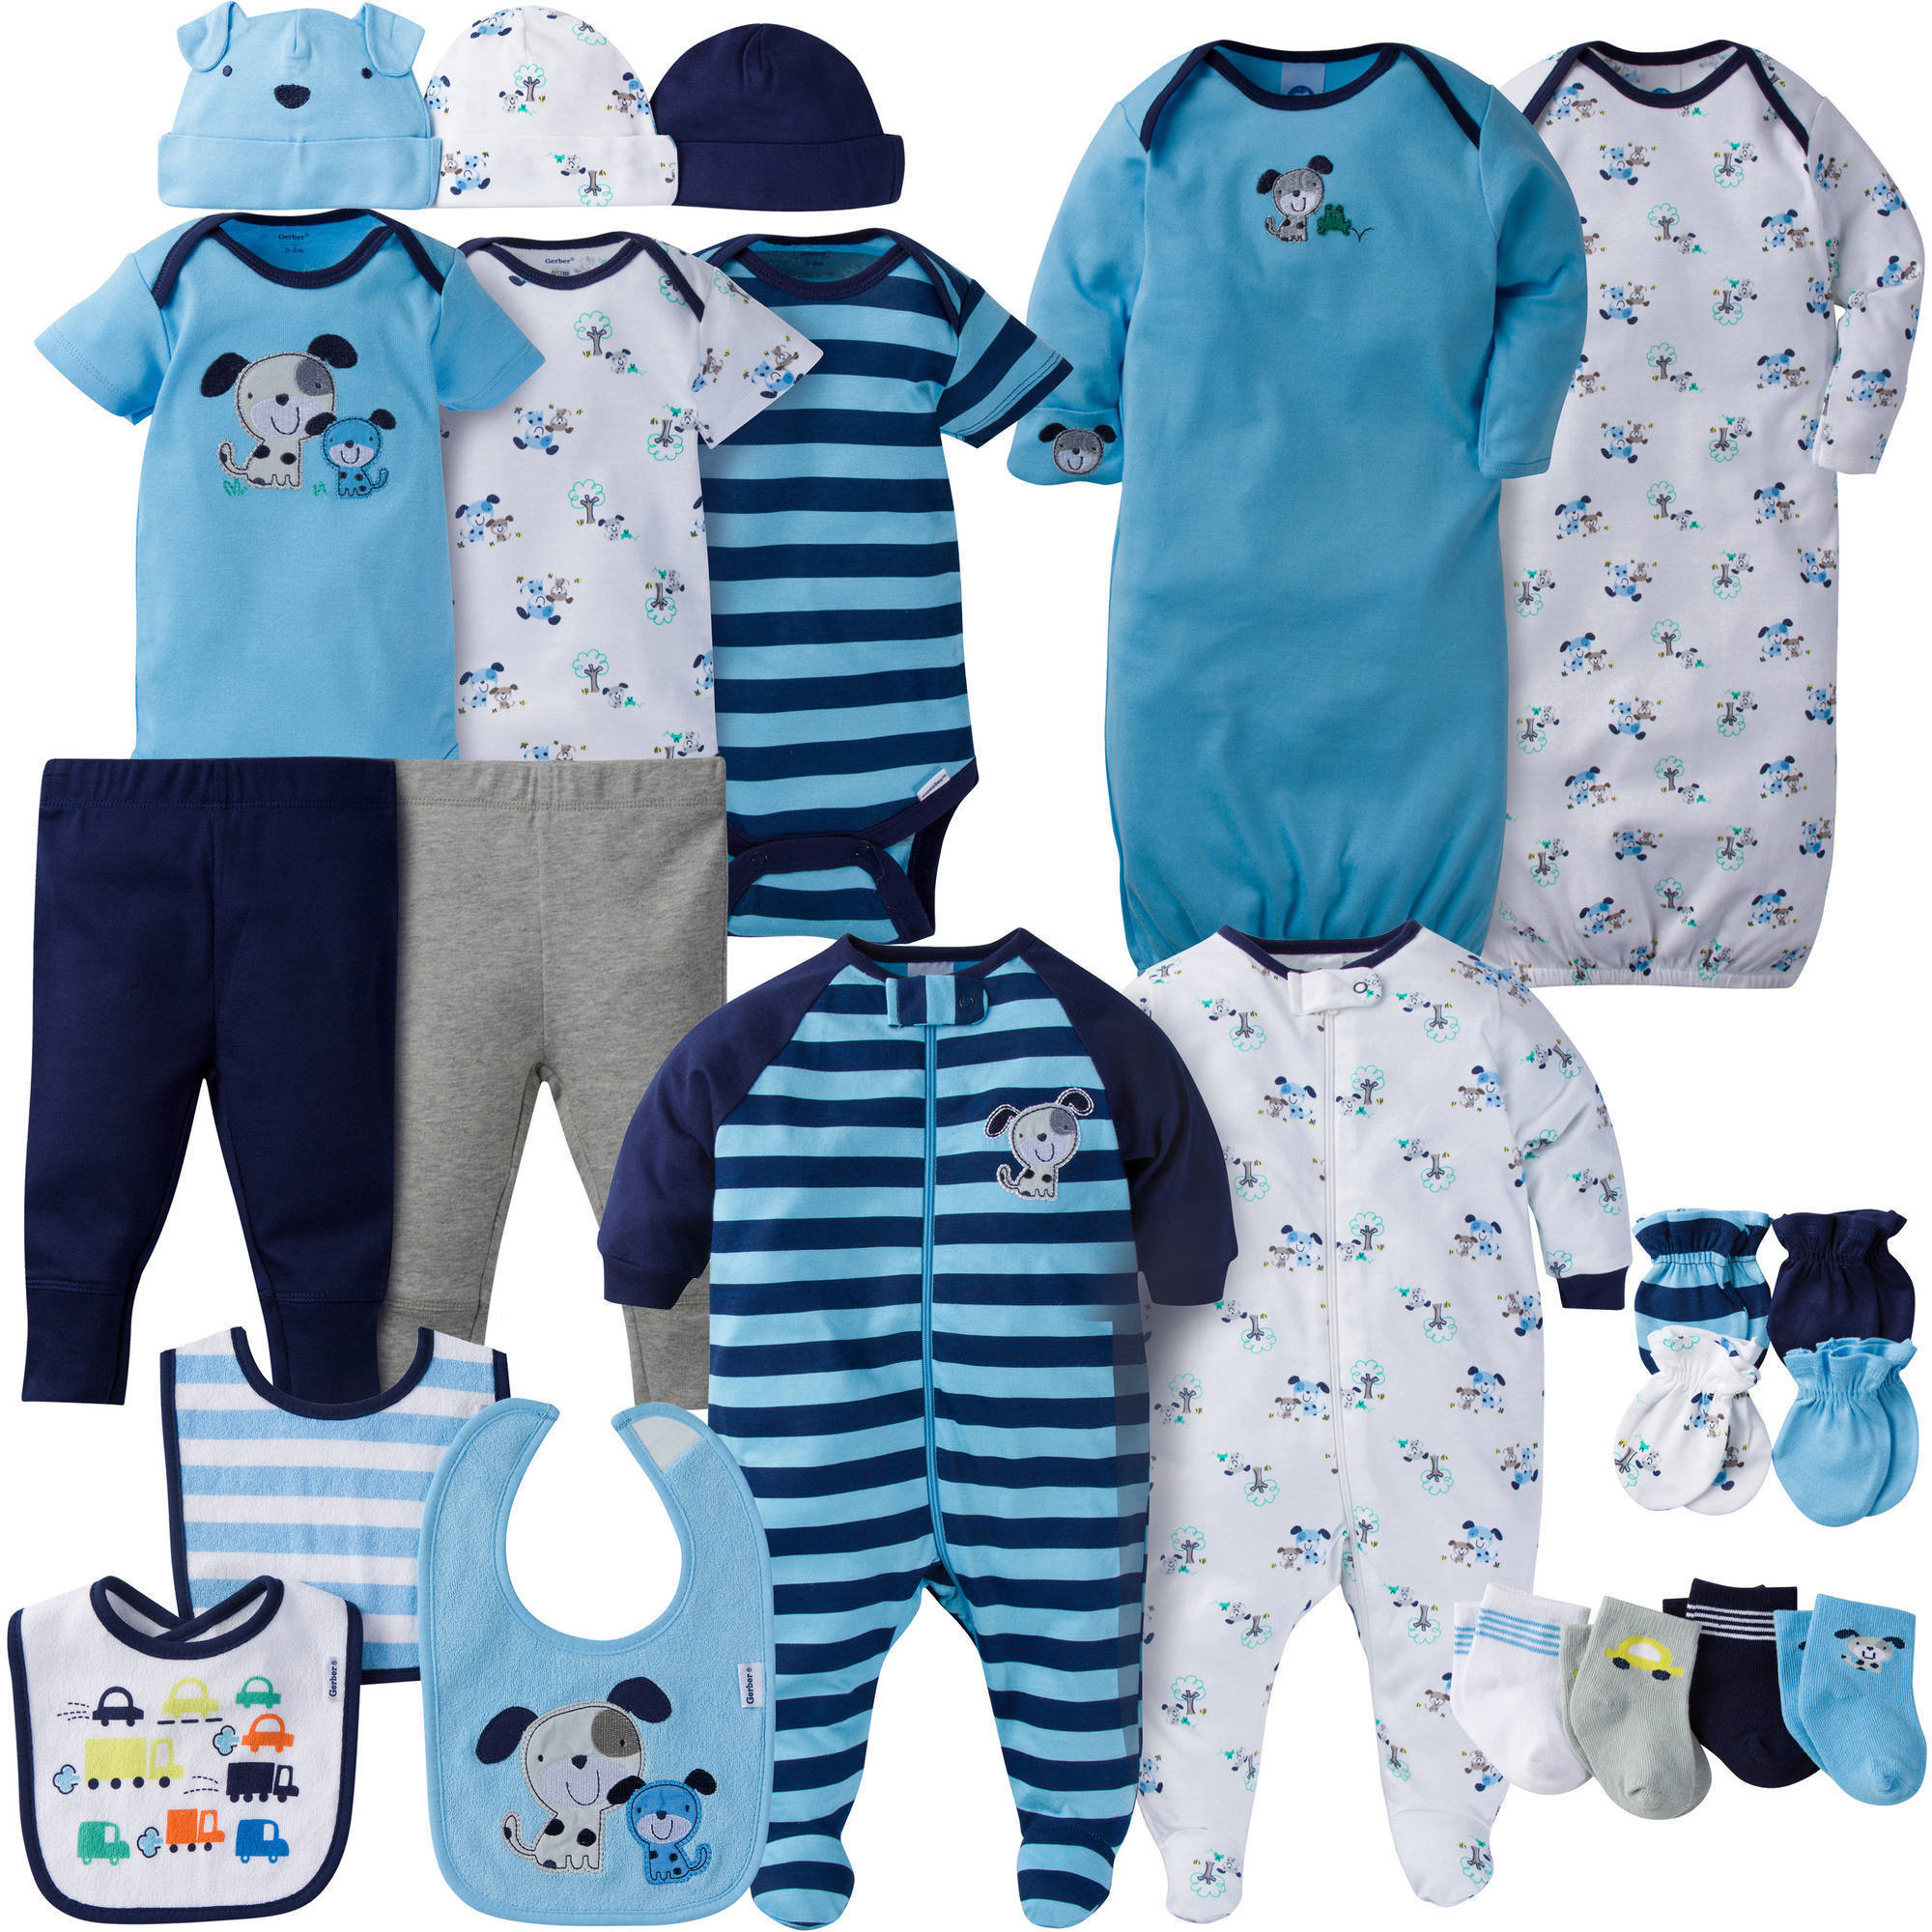 Gerber Newborn Baby Boy Perfect Baby Shower Gift Layette Set, 23-Piece